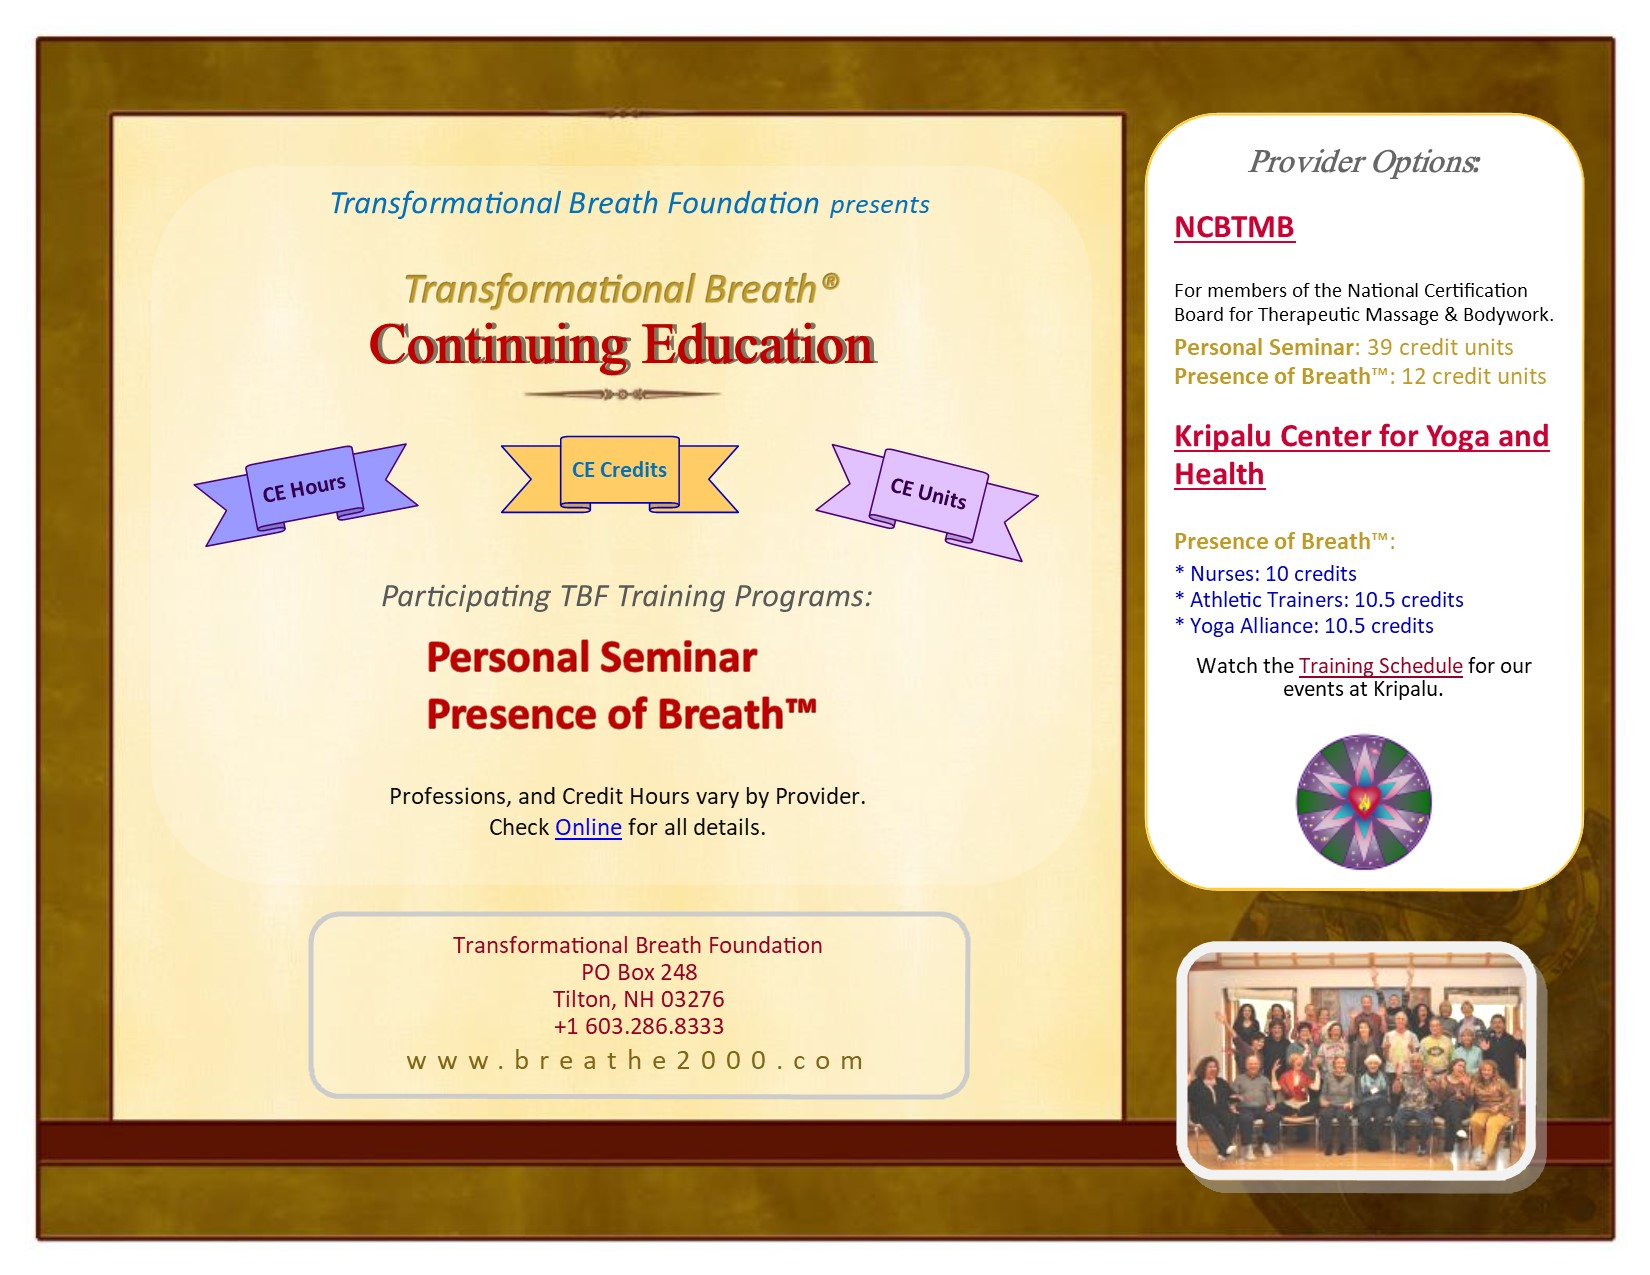 Full-size image of CEU flyer